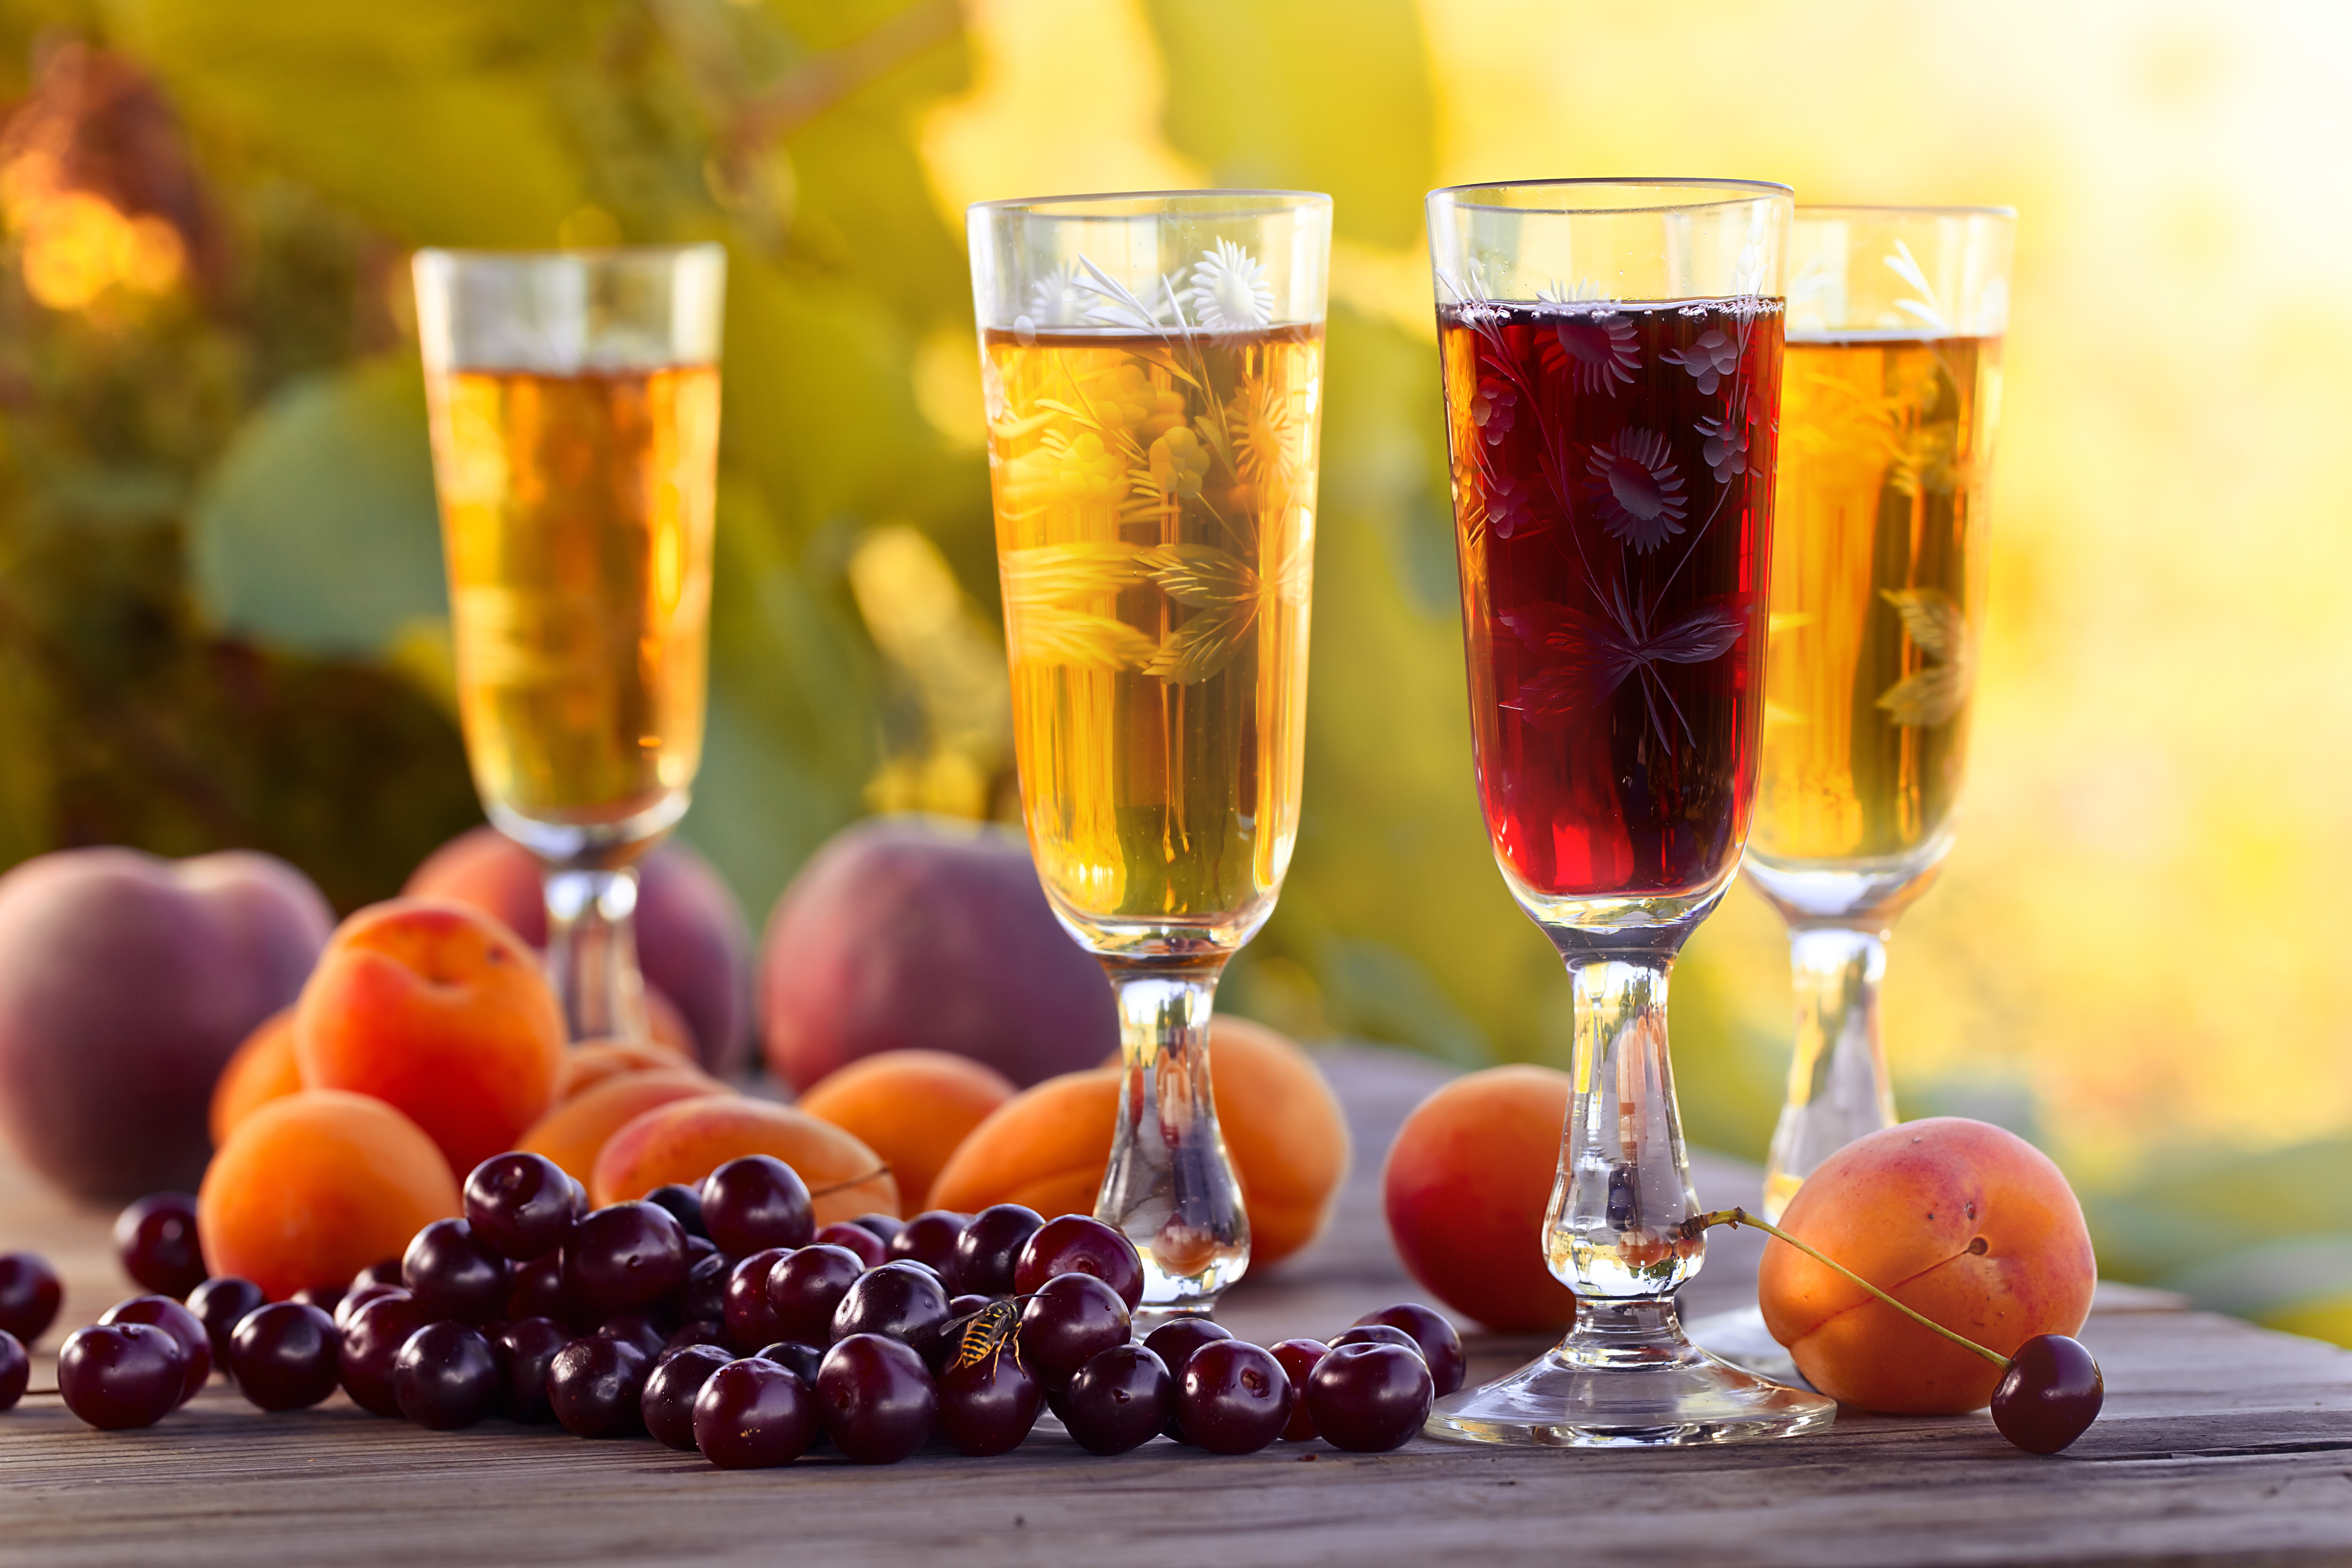 Sweet,Wine,And,Fruits,On,Wooden,Table